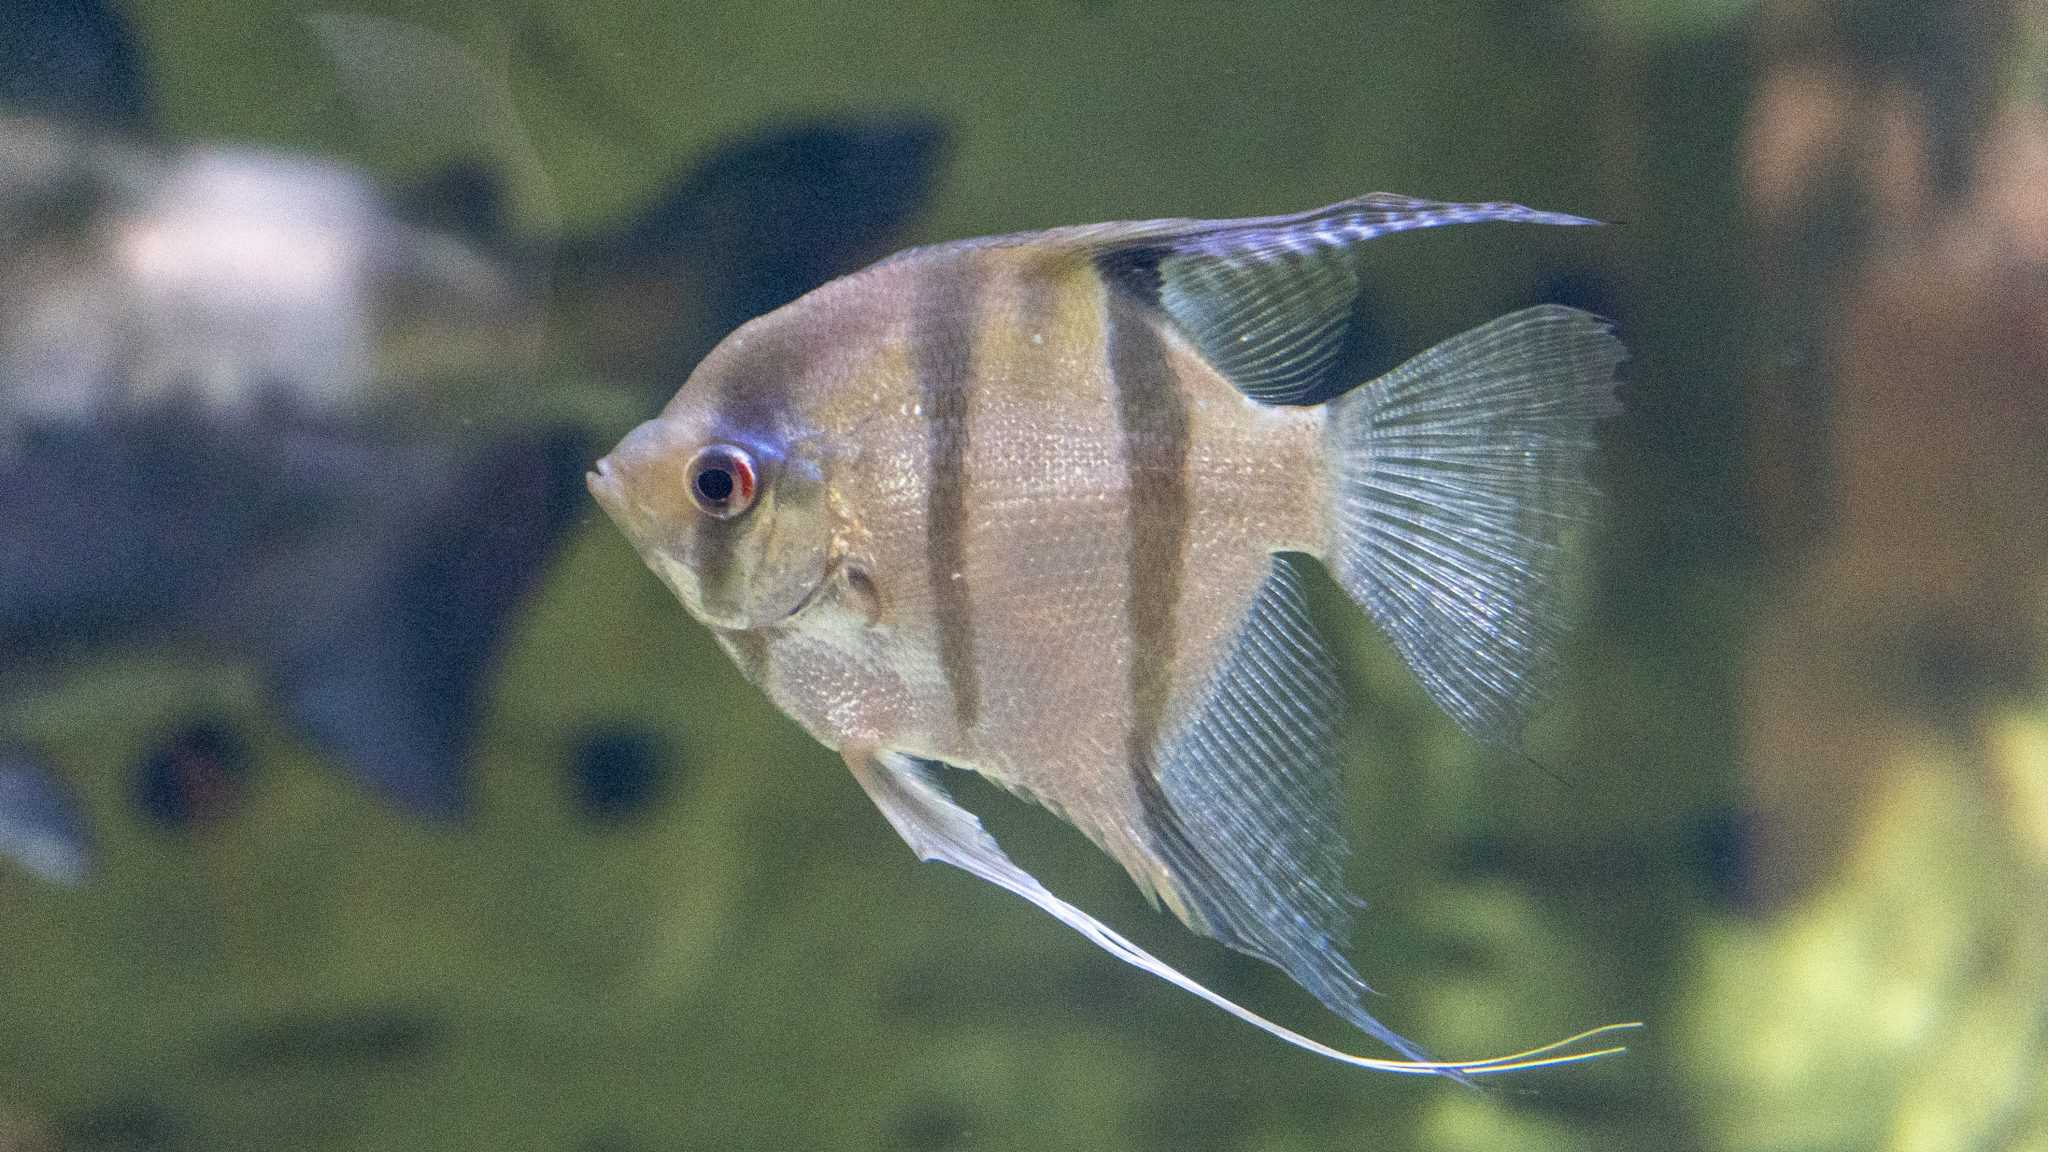 Poisson scalaire - Aquarium de Paris